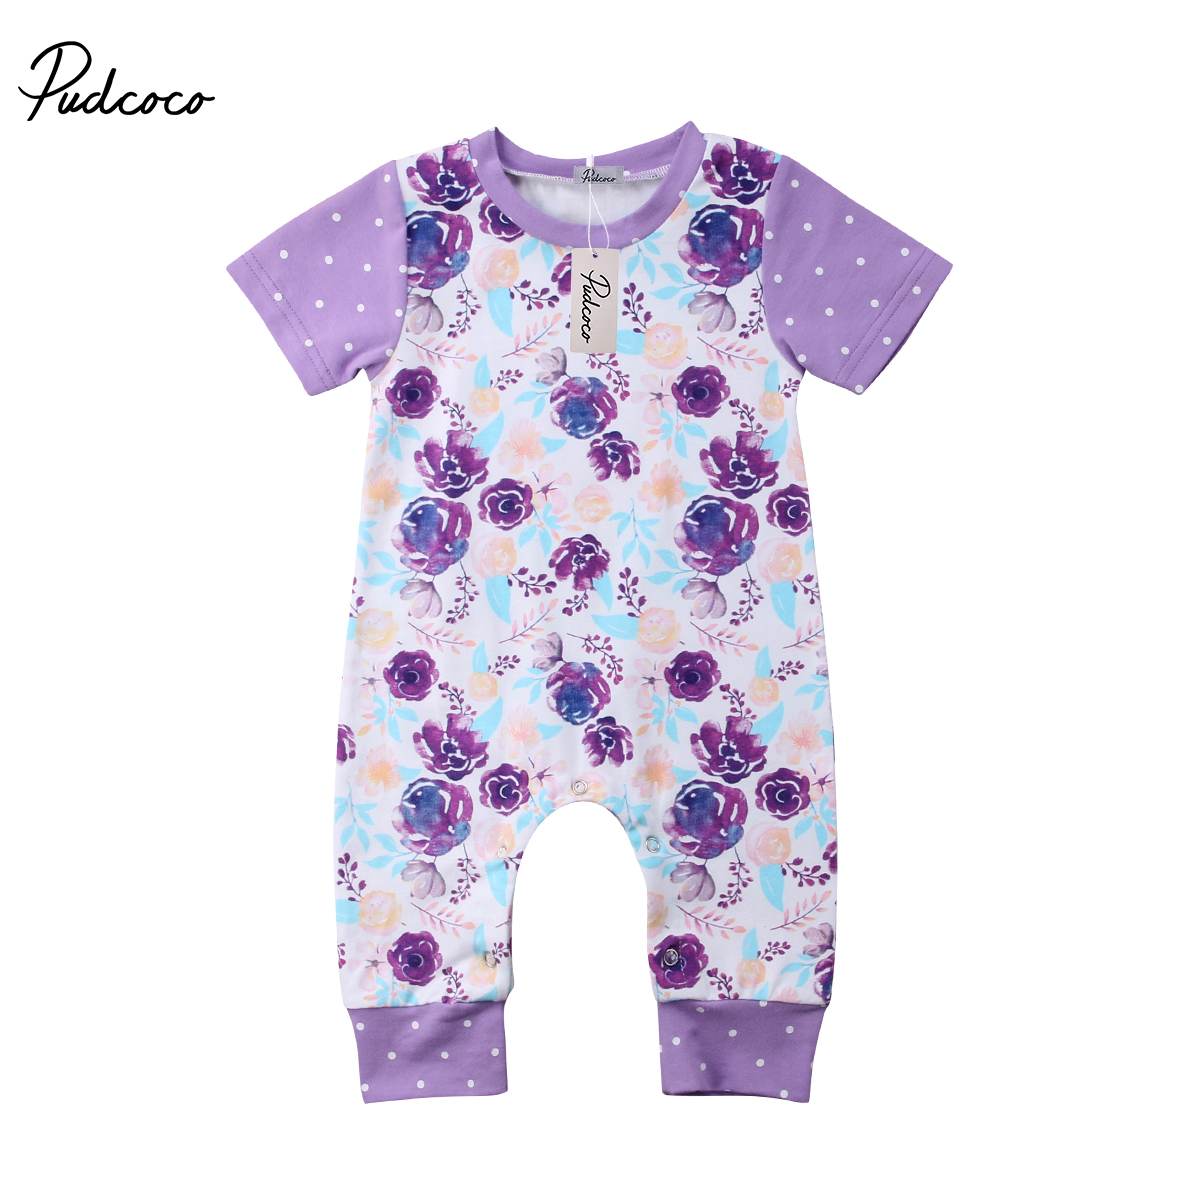 Pudcoco Newborn Infant Baby Boy Girl Cotton Short Sleeve O-Neck Floral Romper Outfit 0-24 Months Helen115